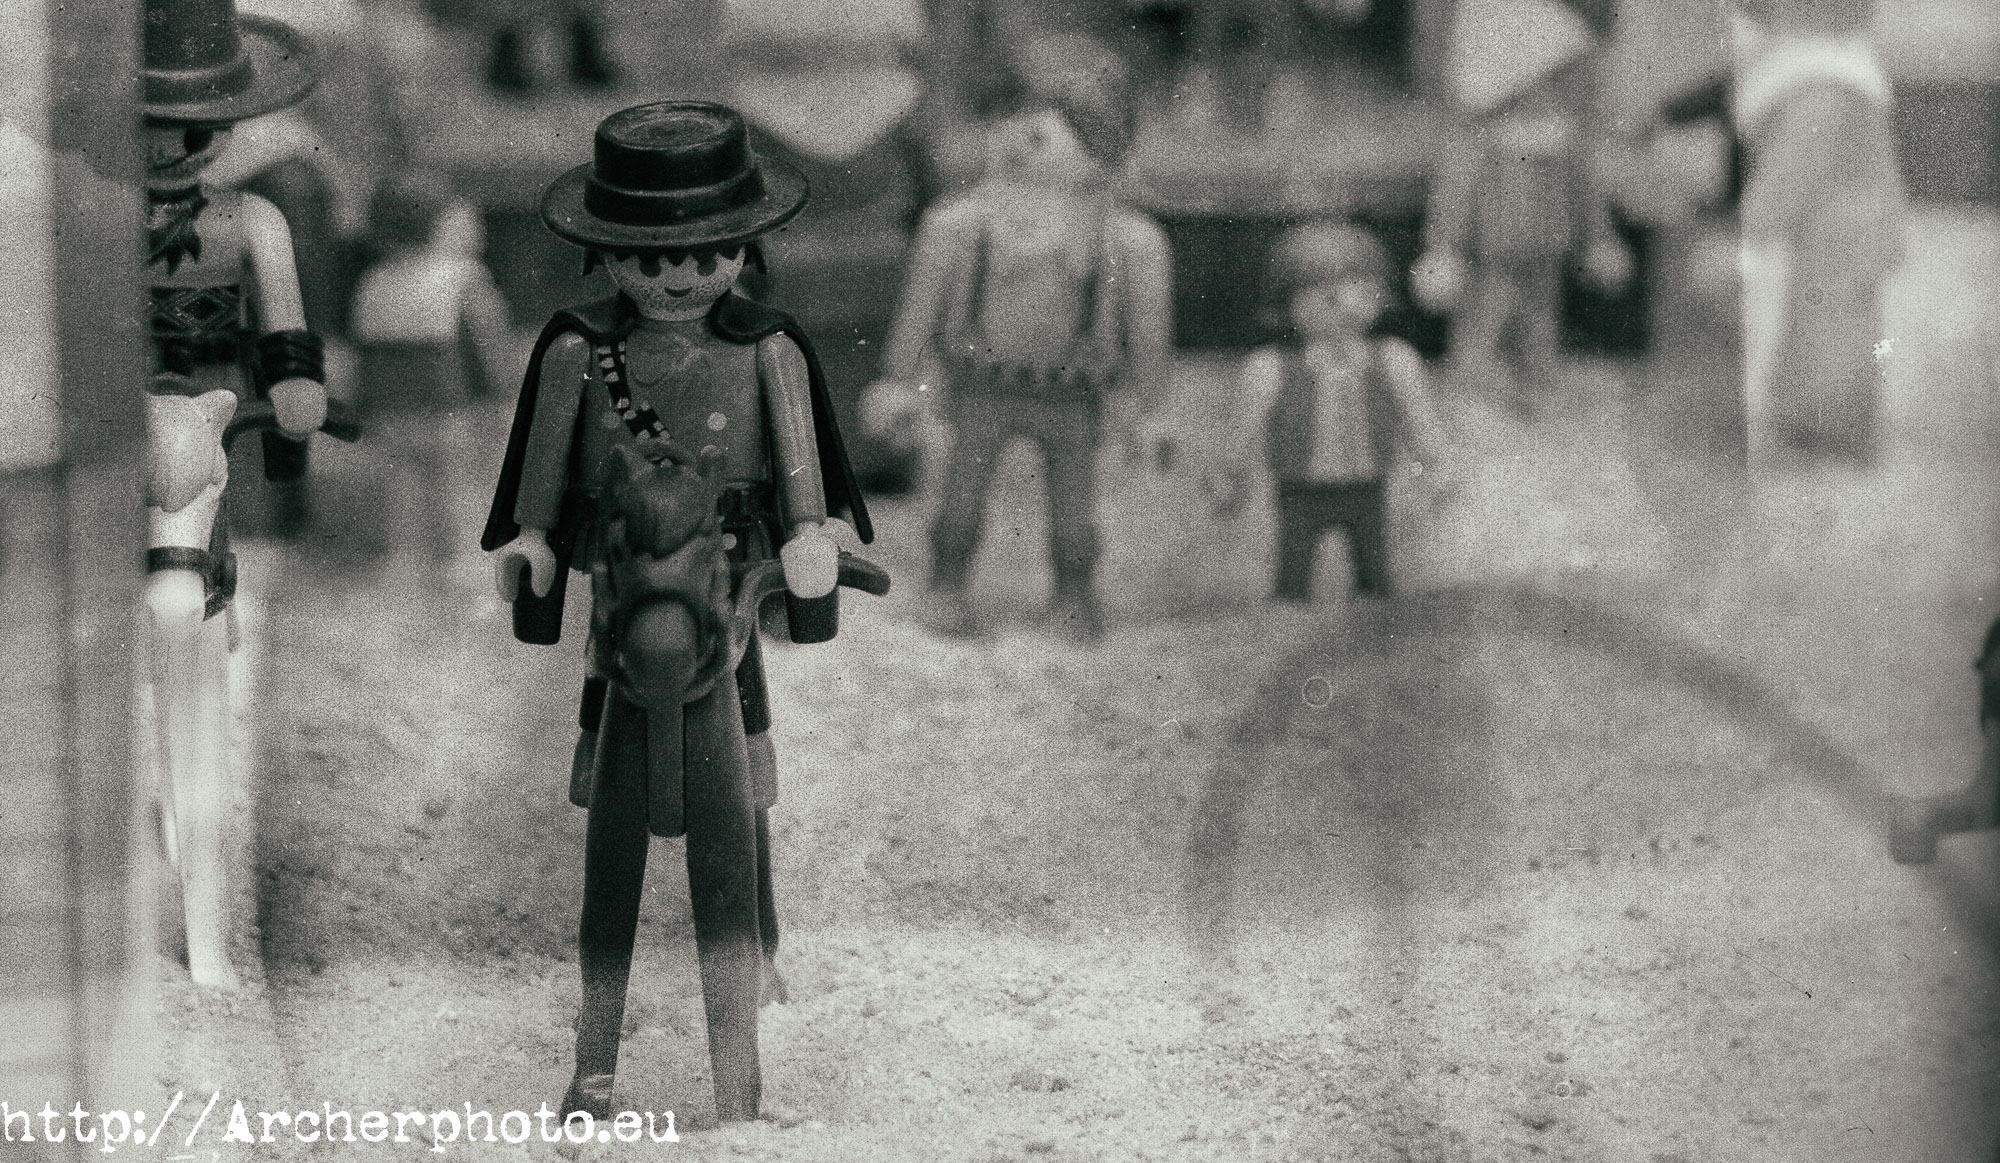 Clicks de Playmobil, Archerphoto, fotógrafo en el Far West